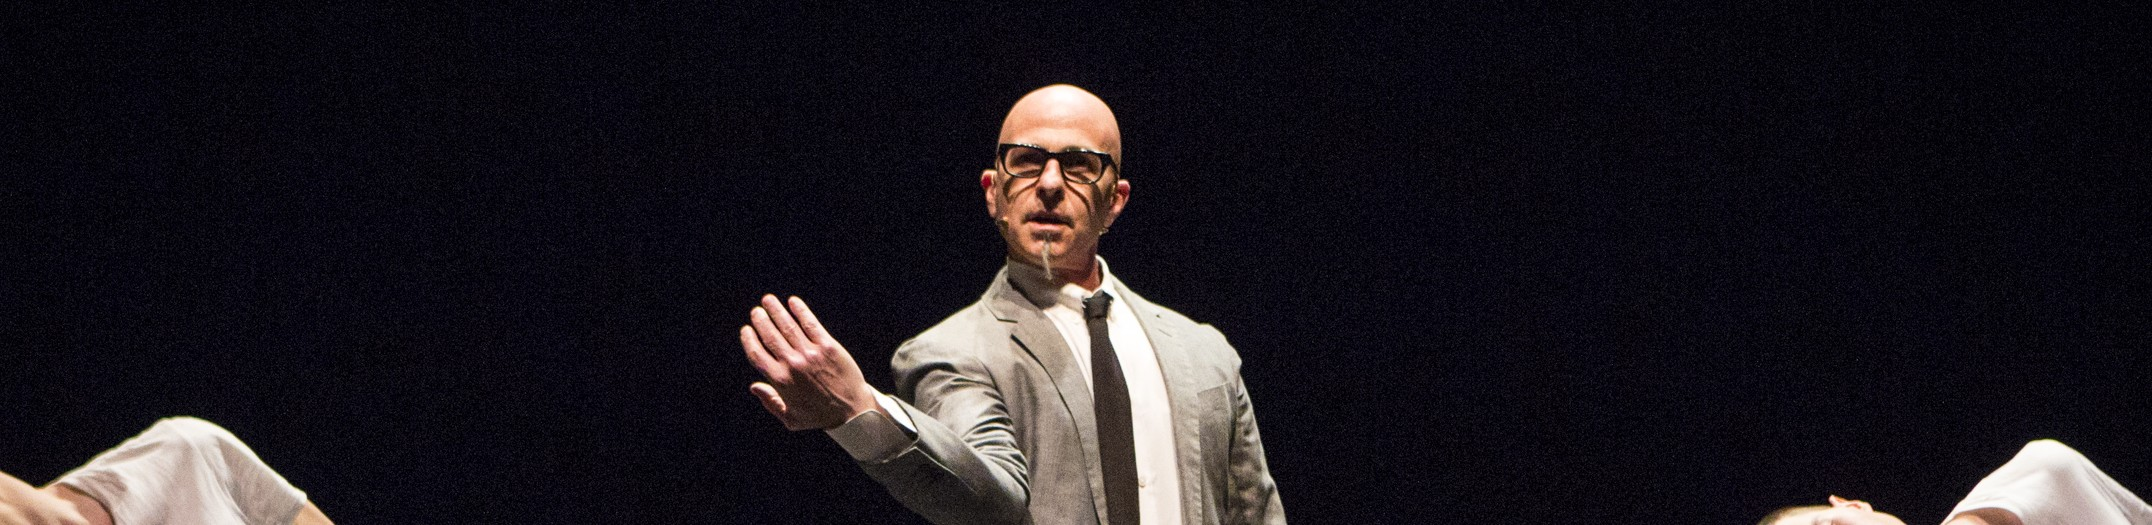 Stephen Petronio Company Buys a New Home in the Catskills